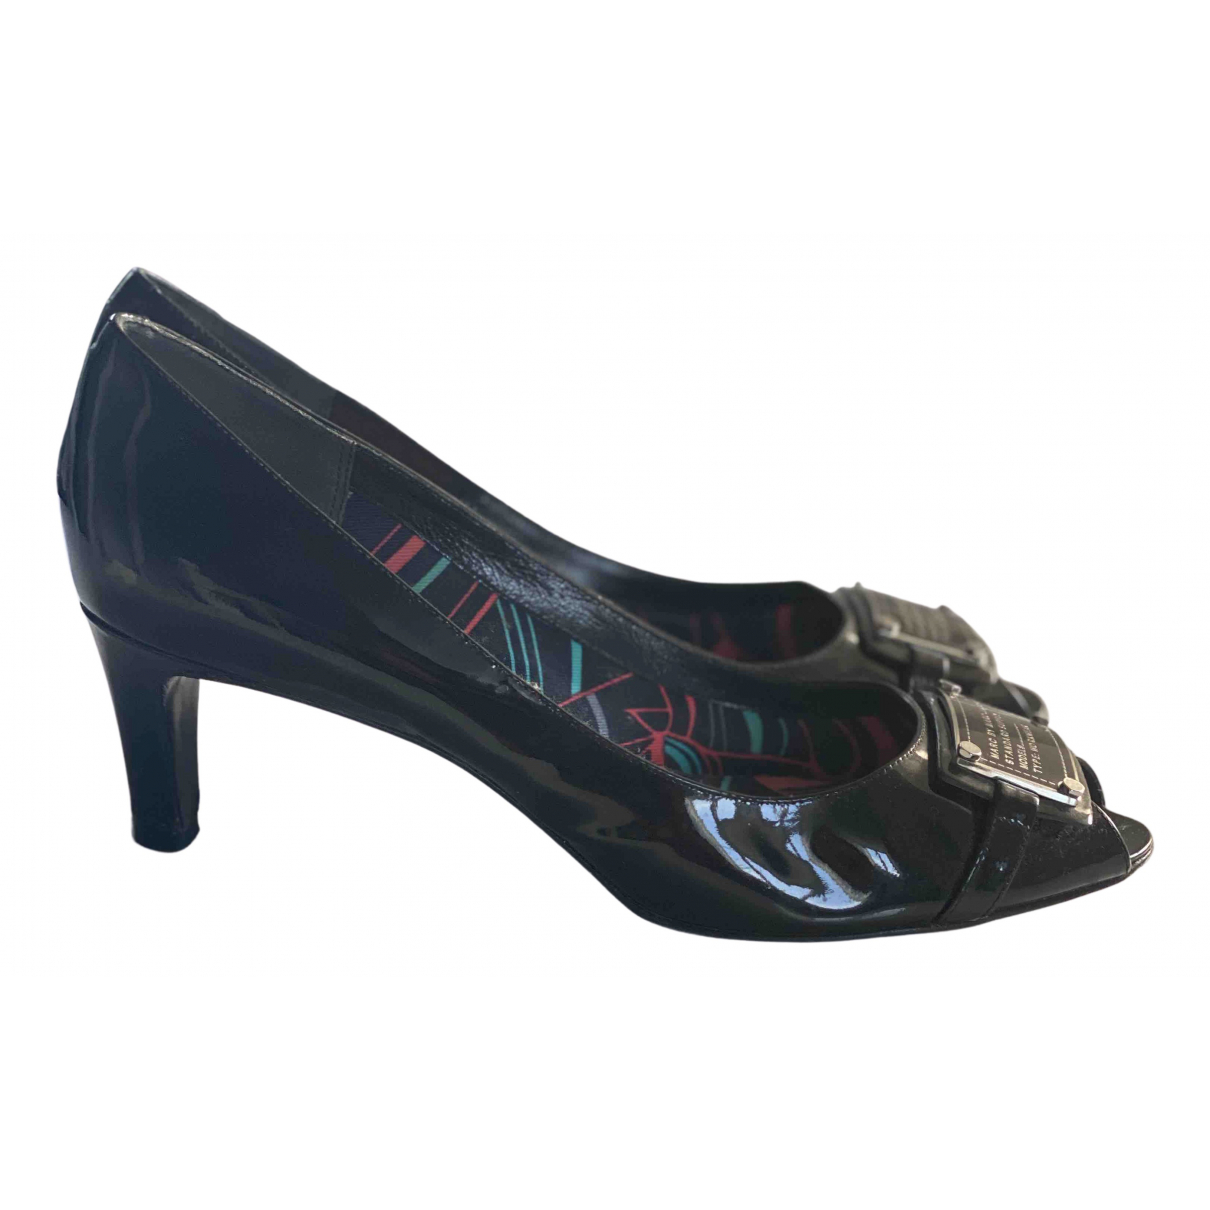 Marc By Marc Jacobs N Black Patent leather Heels for Women 40 EU